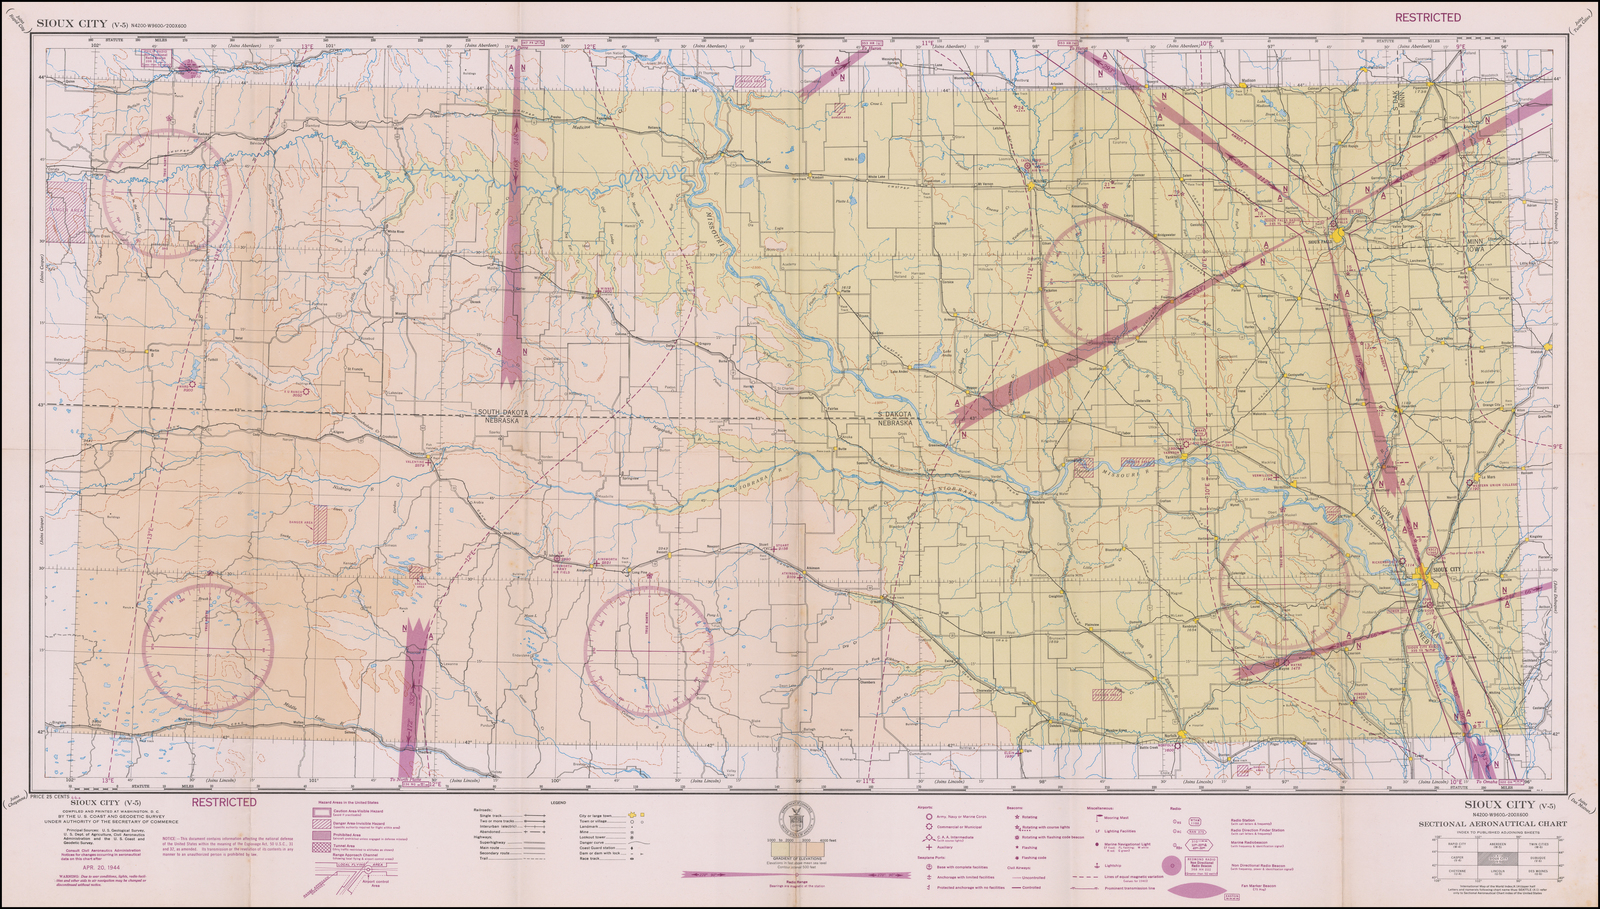 Restricted) Sioux City       Sectional Aeronautical Chart